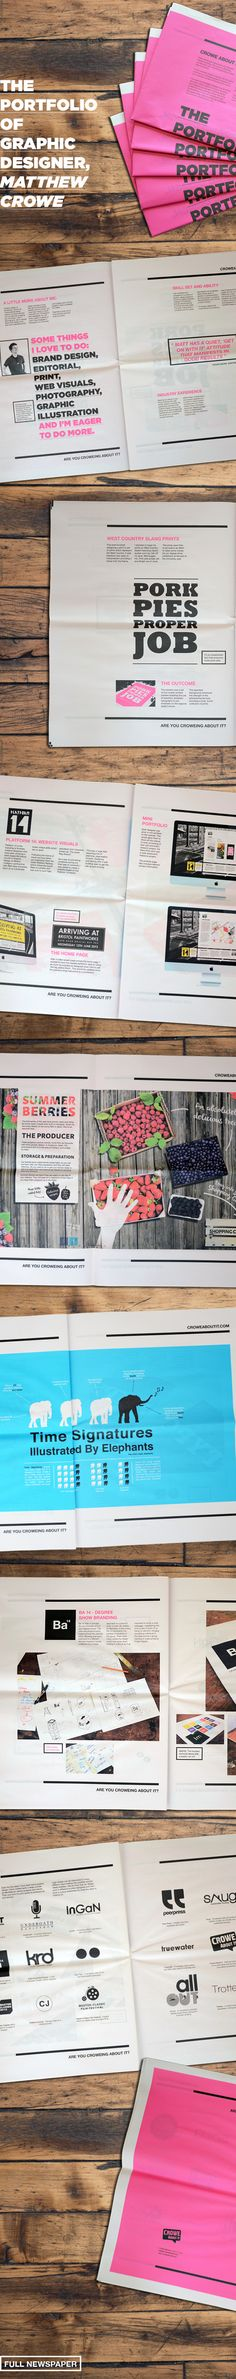 Newspaper Portfolio - Crowe About It on Behance